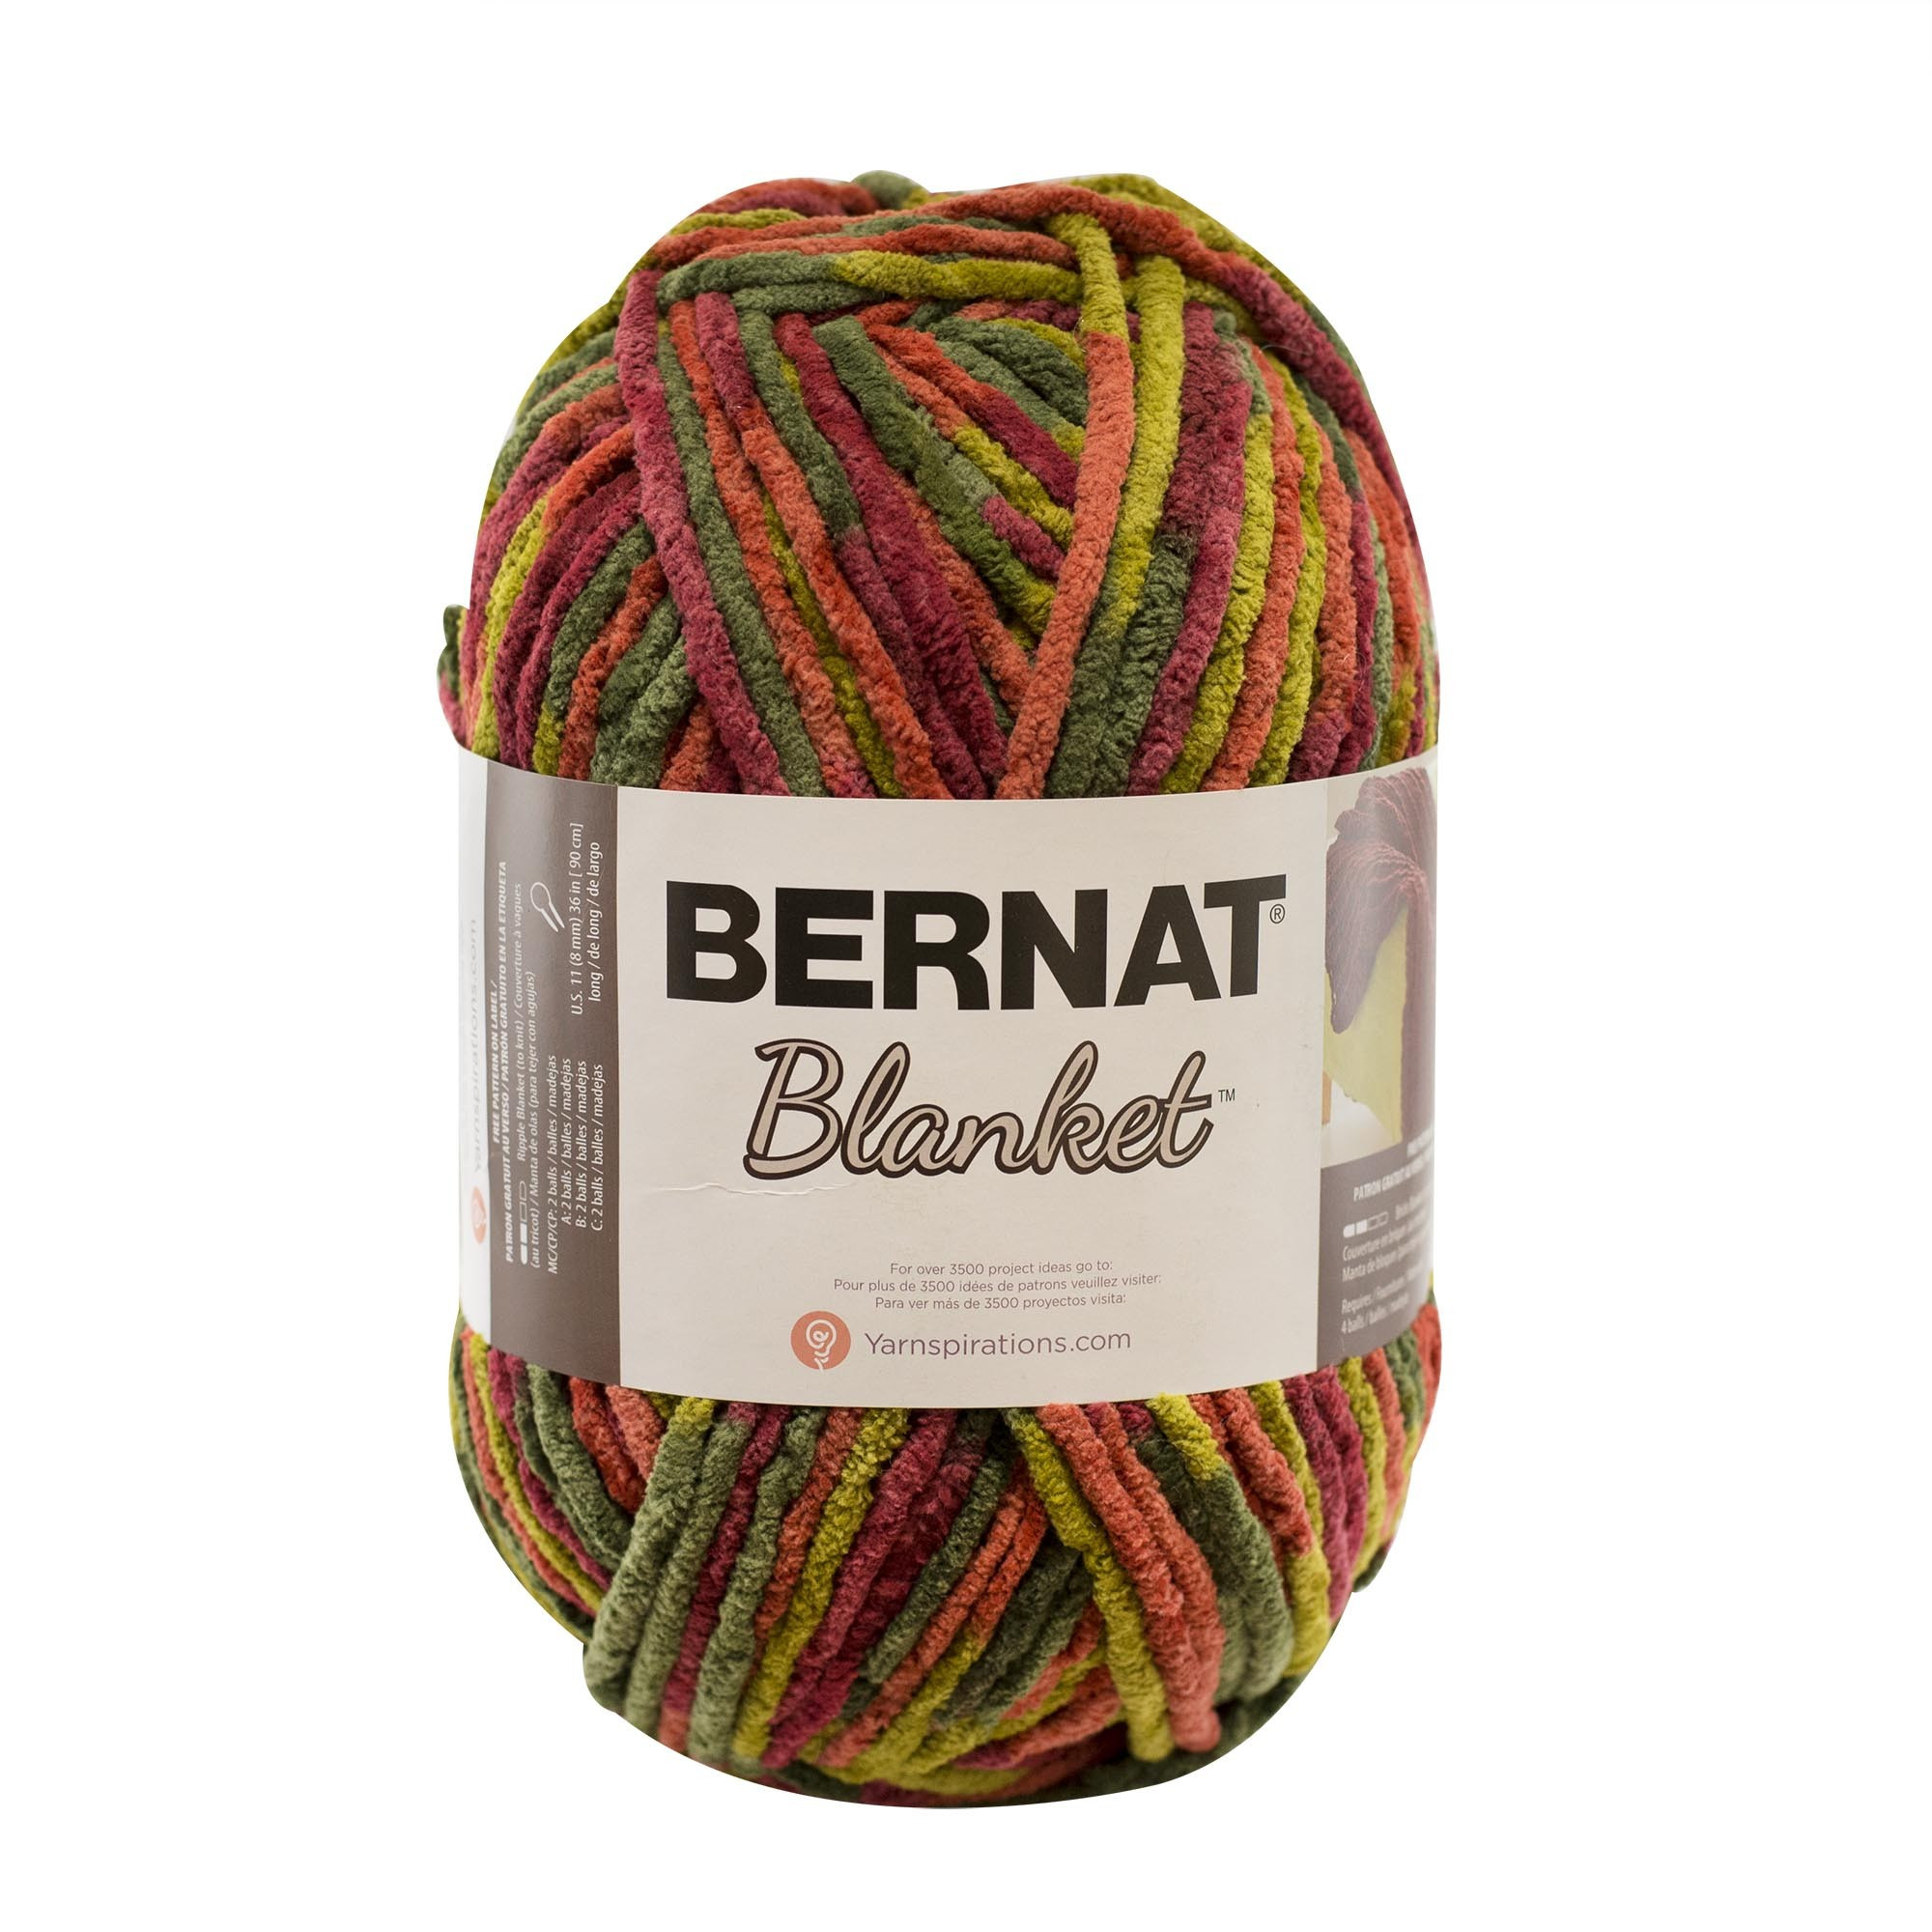 Bernat Blanket Big Ball Super Chunky Yarn Knitting Yarn